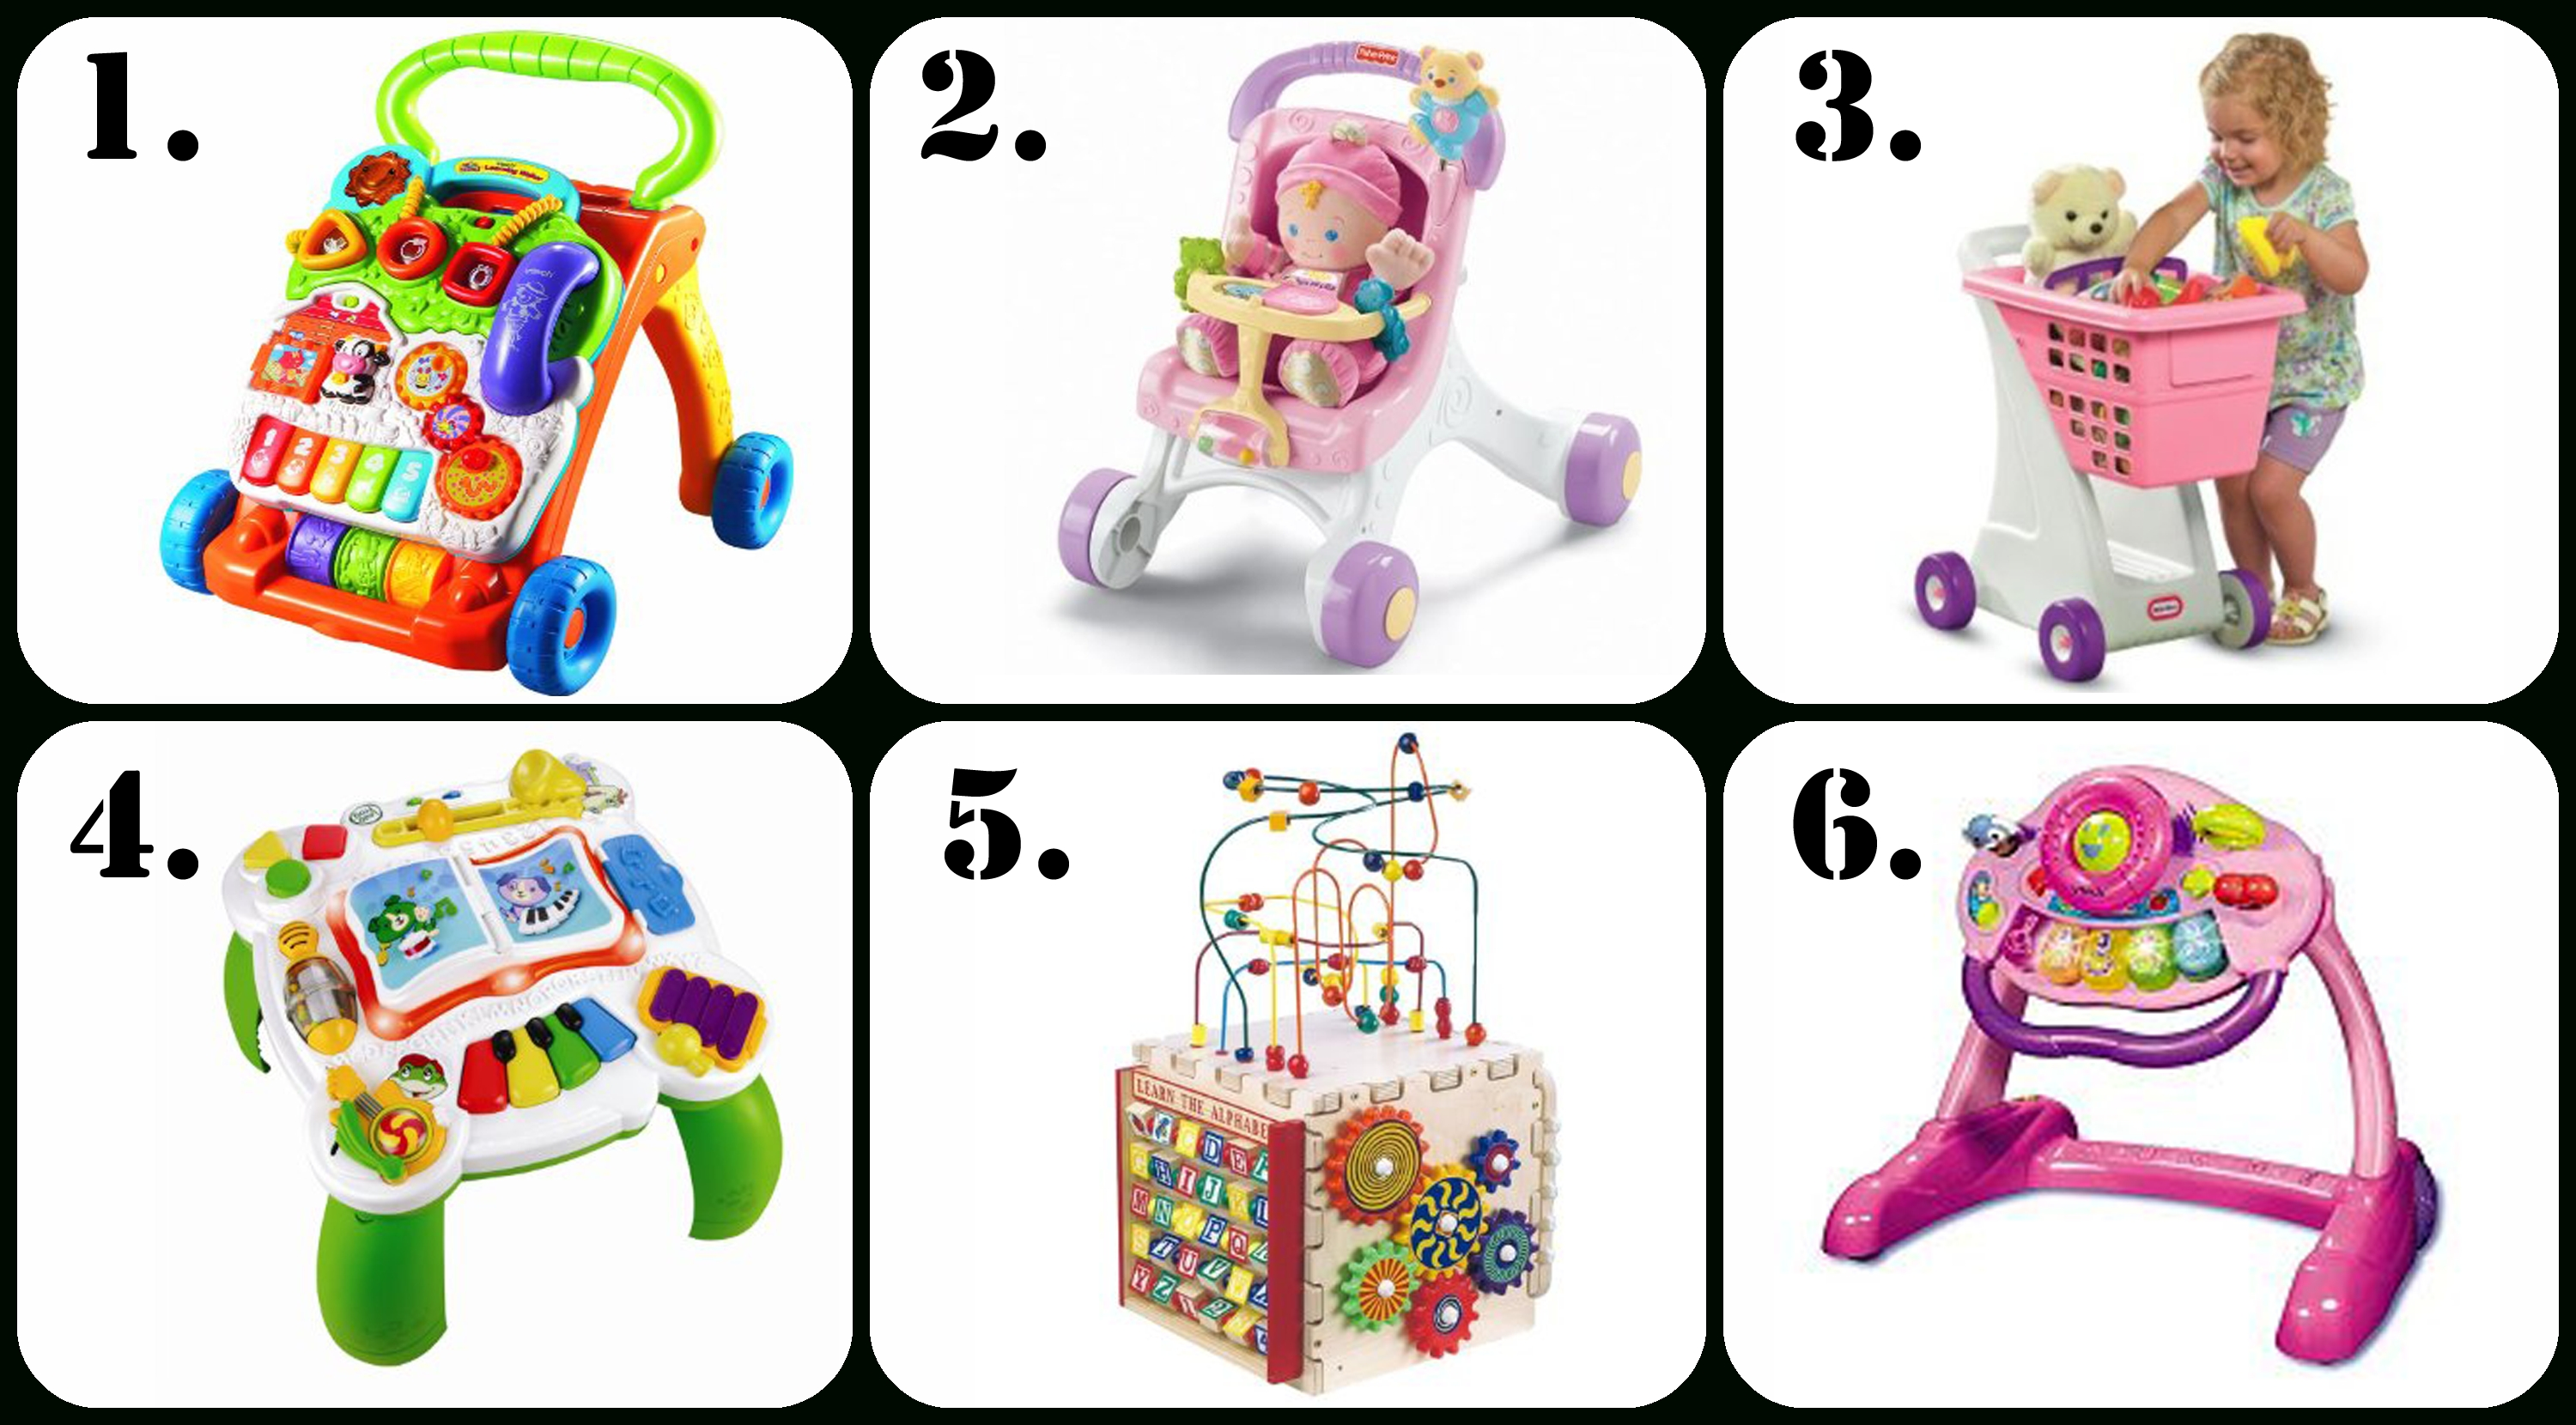 10 Pretty Gift Ideas For One Year Old Girl the ultimate gift list for a 1 year old girl e280a2 the pinning mama 6 2020